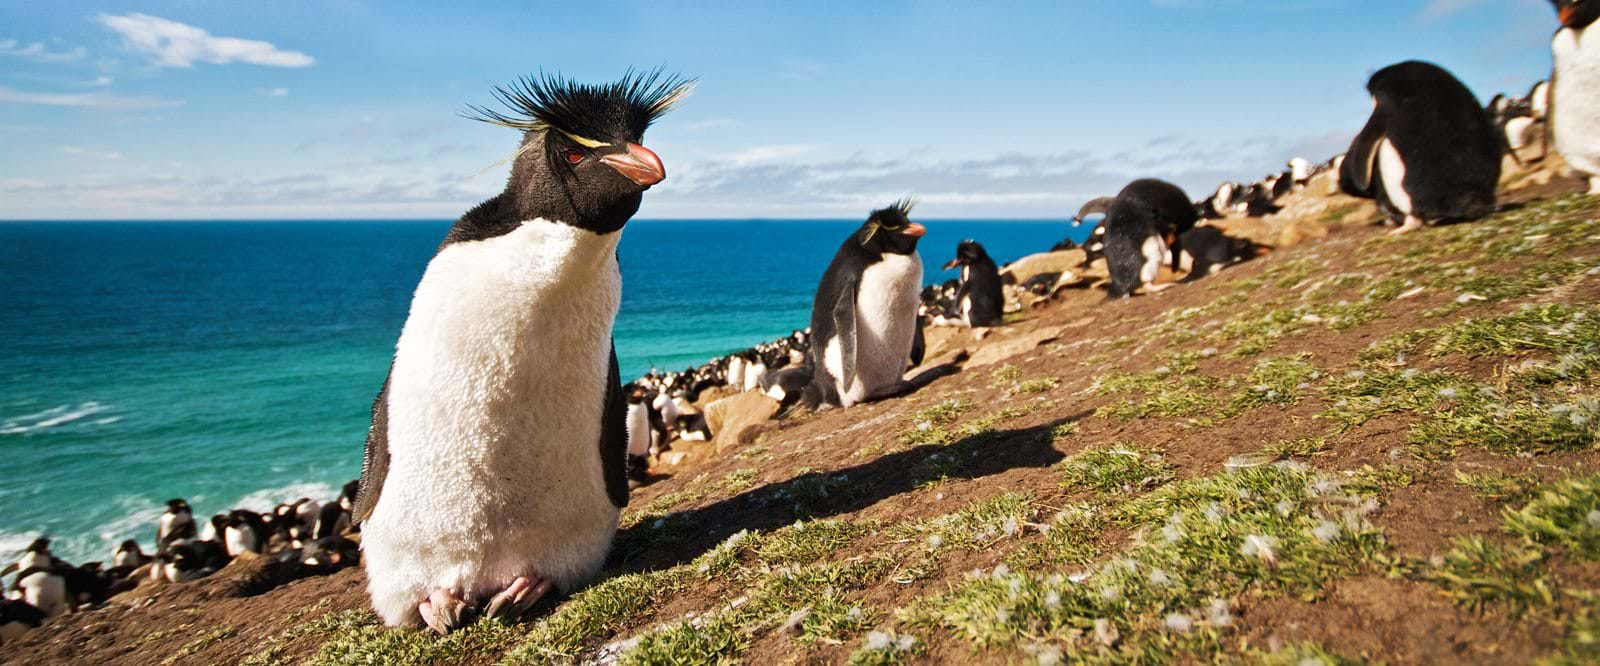 Rockhopper penguin, the Falkland Islands